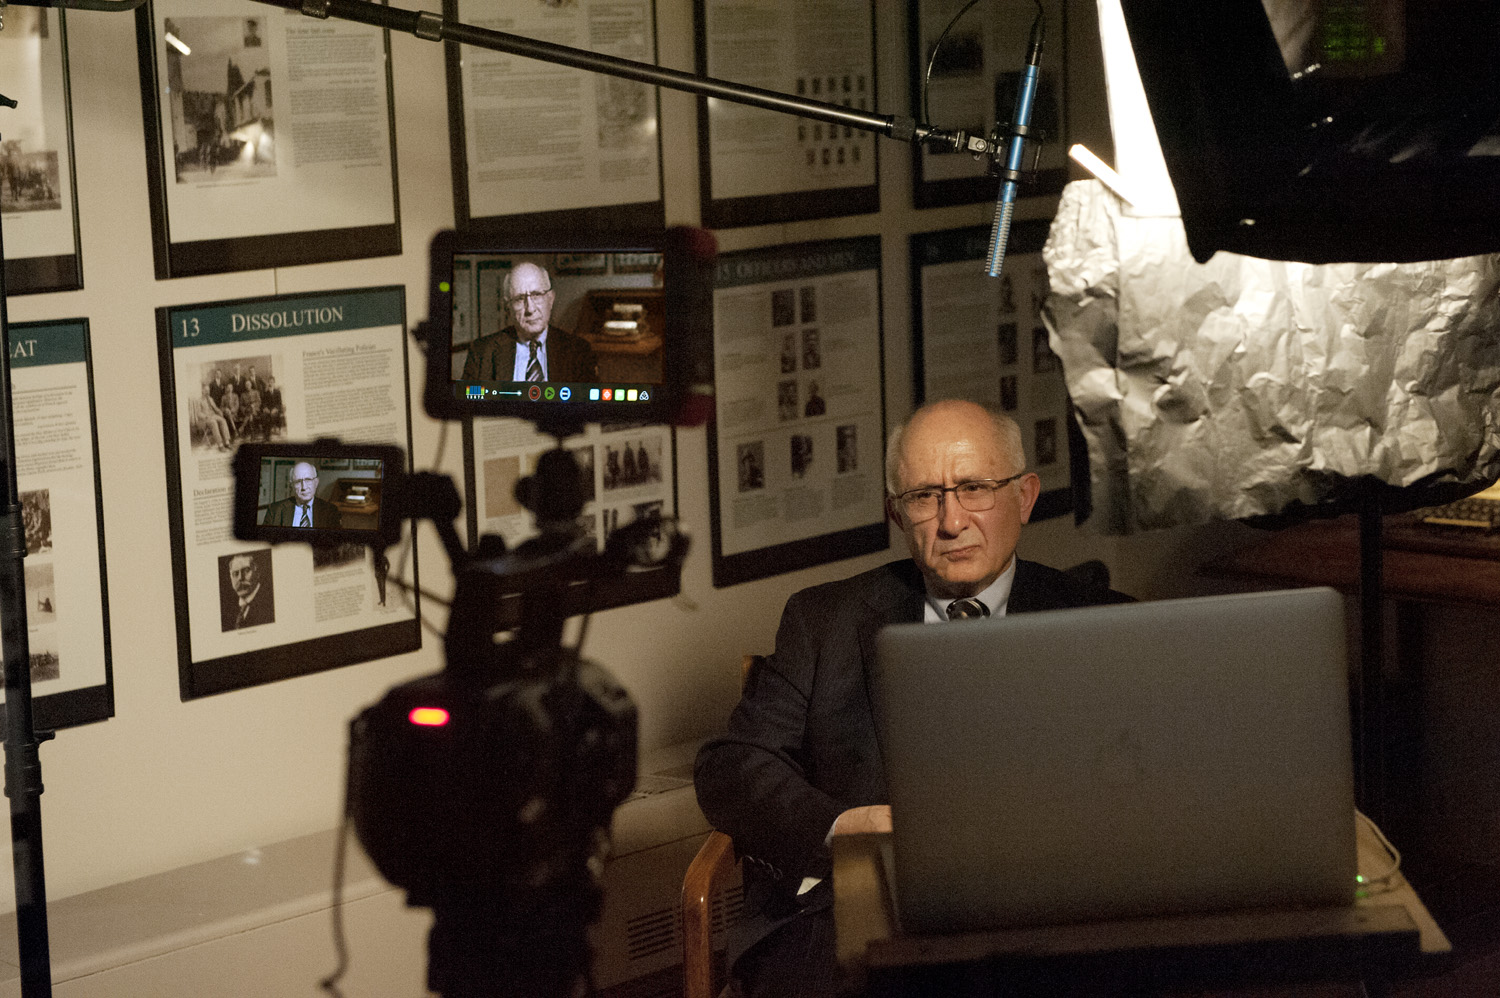 Akçam being documented at the Armenian Museum of America in Watertown for his presentation